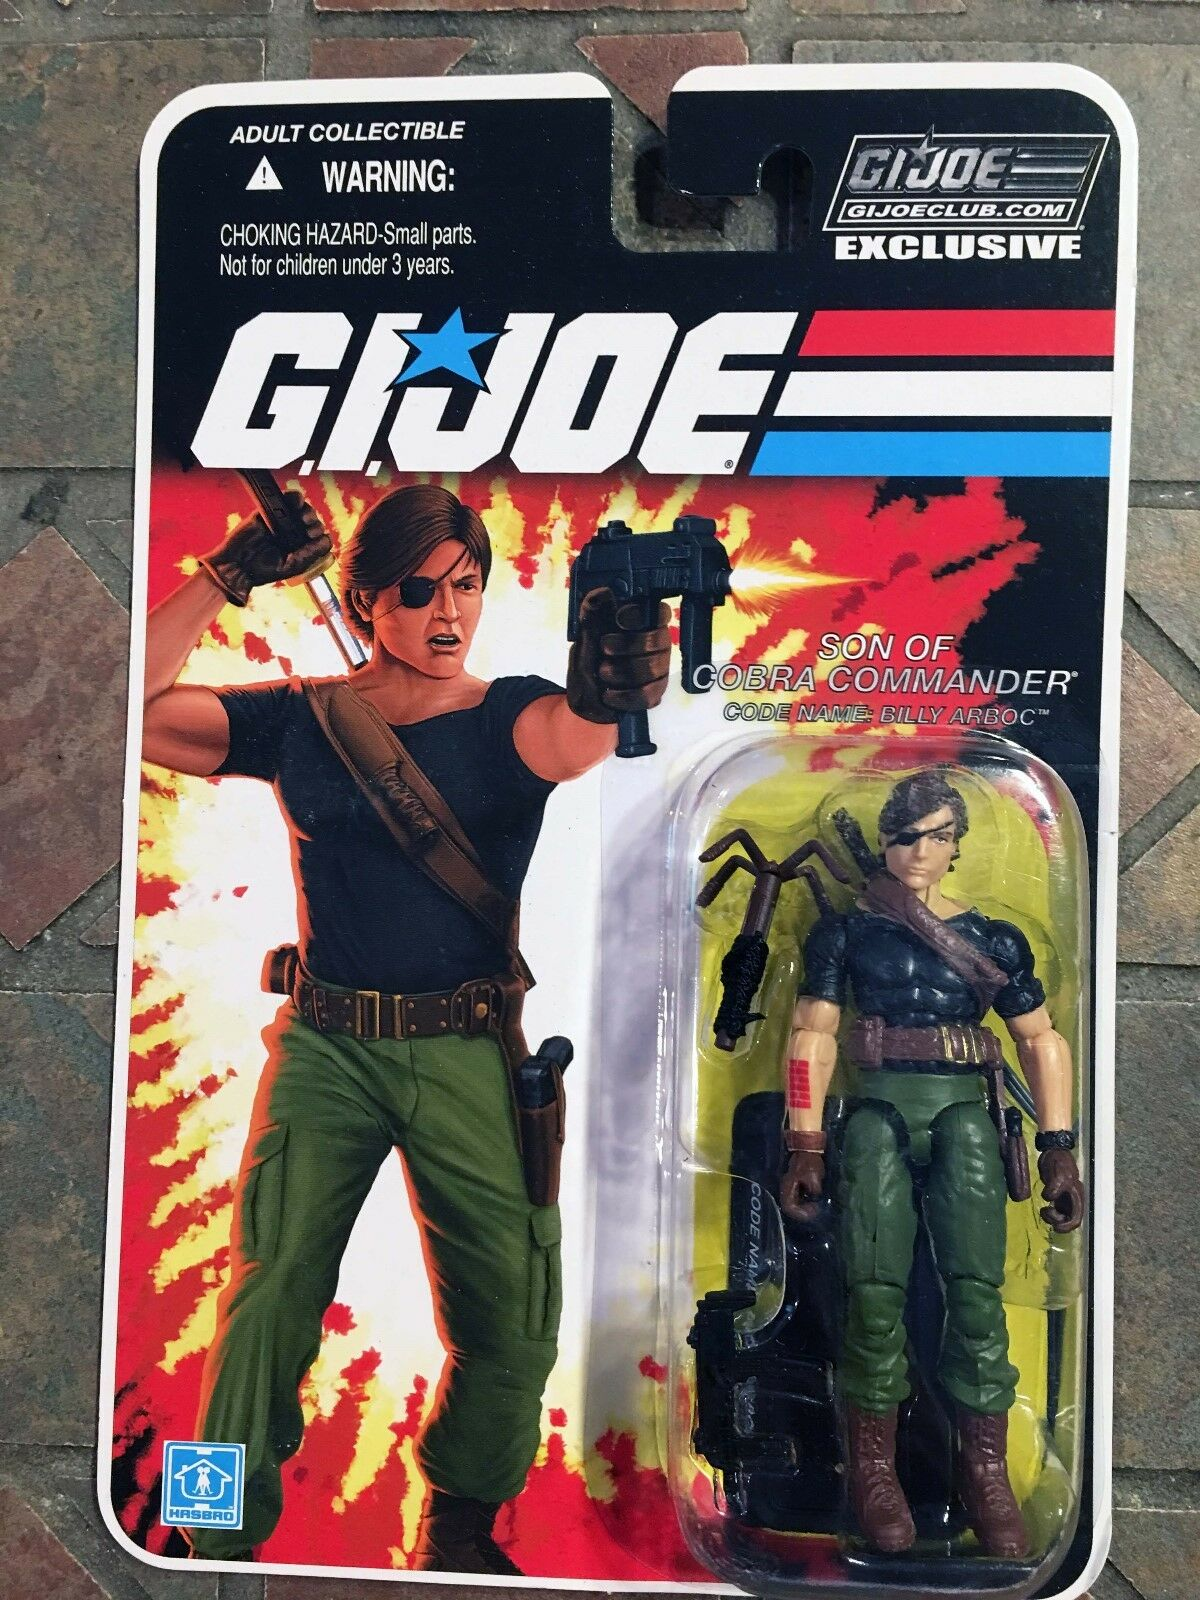 Gi Joe Billy Arbco Fss 4.0 Con Club de de de Collectionneurs Figurine Exclusive 2016 be9906